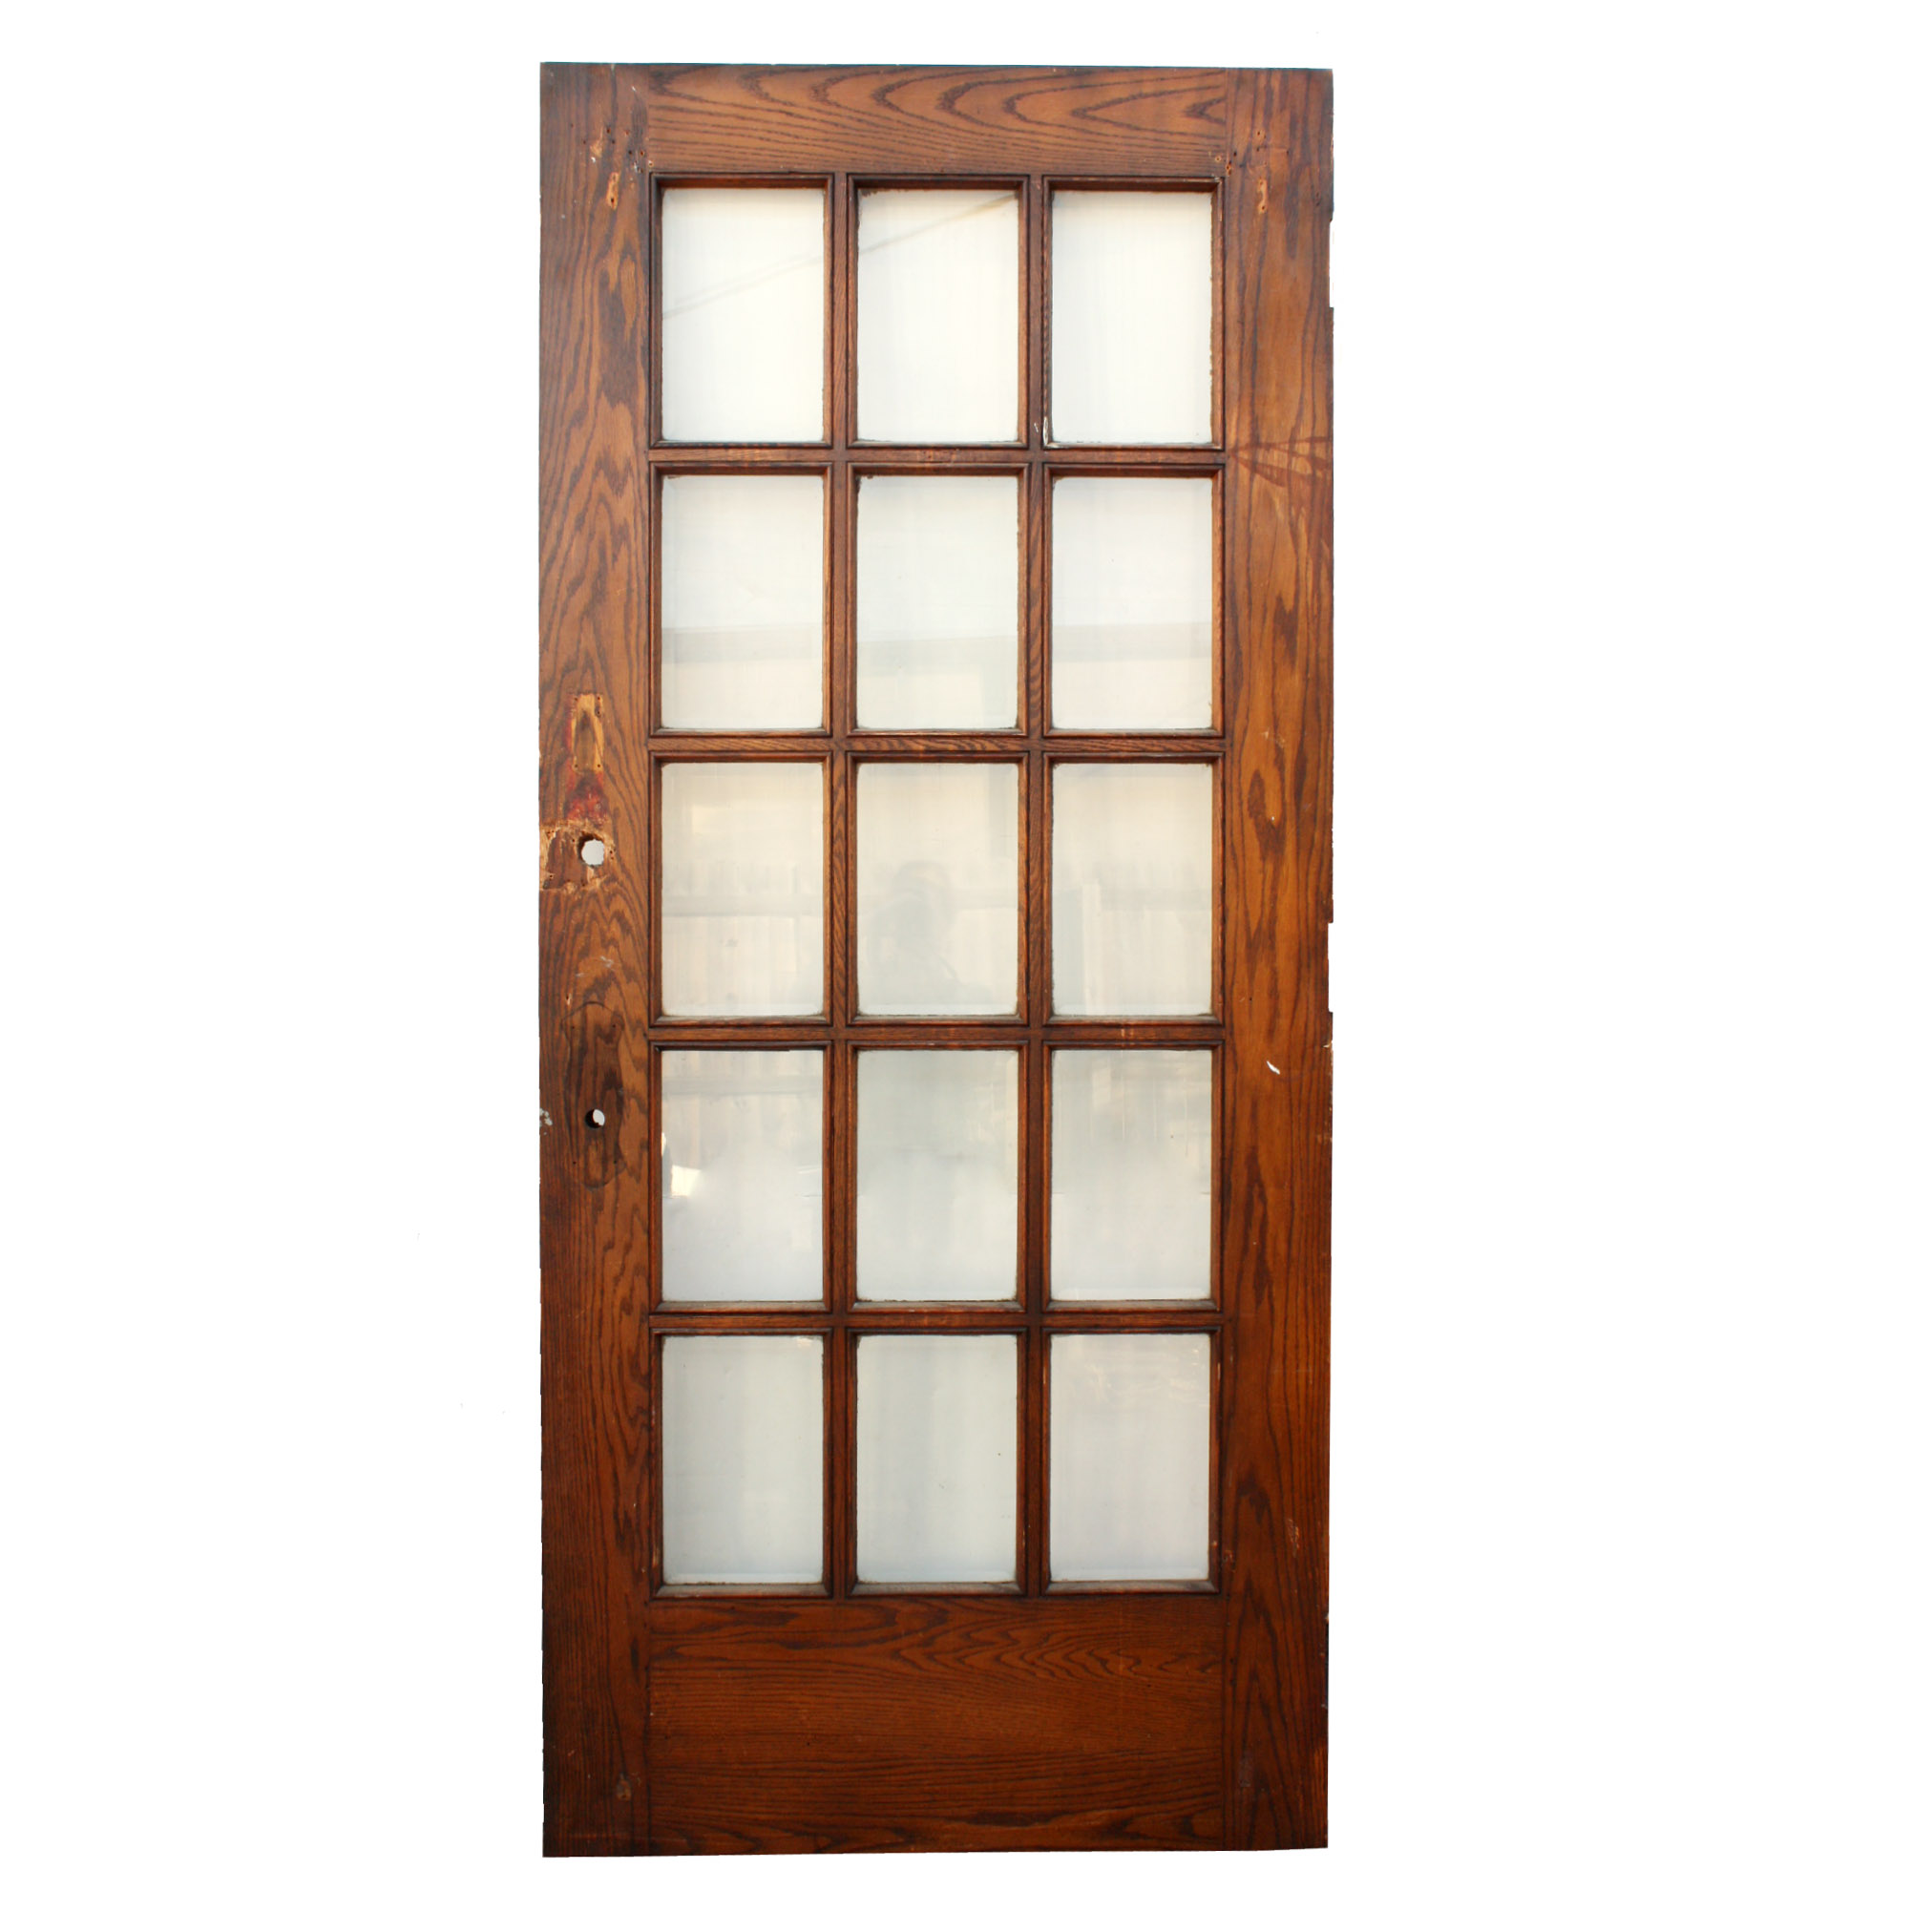 Antique salvaged 36 exterior divided light door with for Exterior glass doors for sale